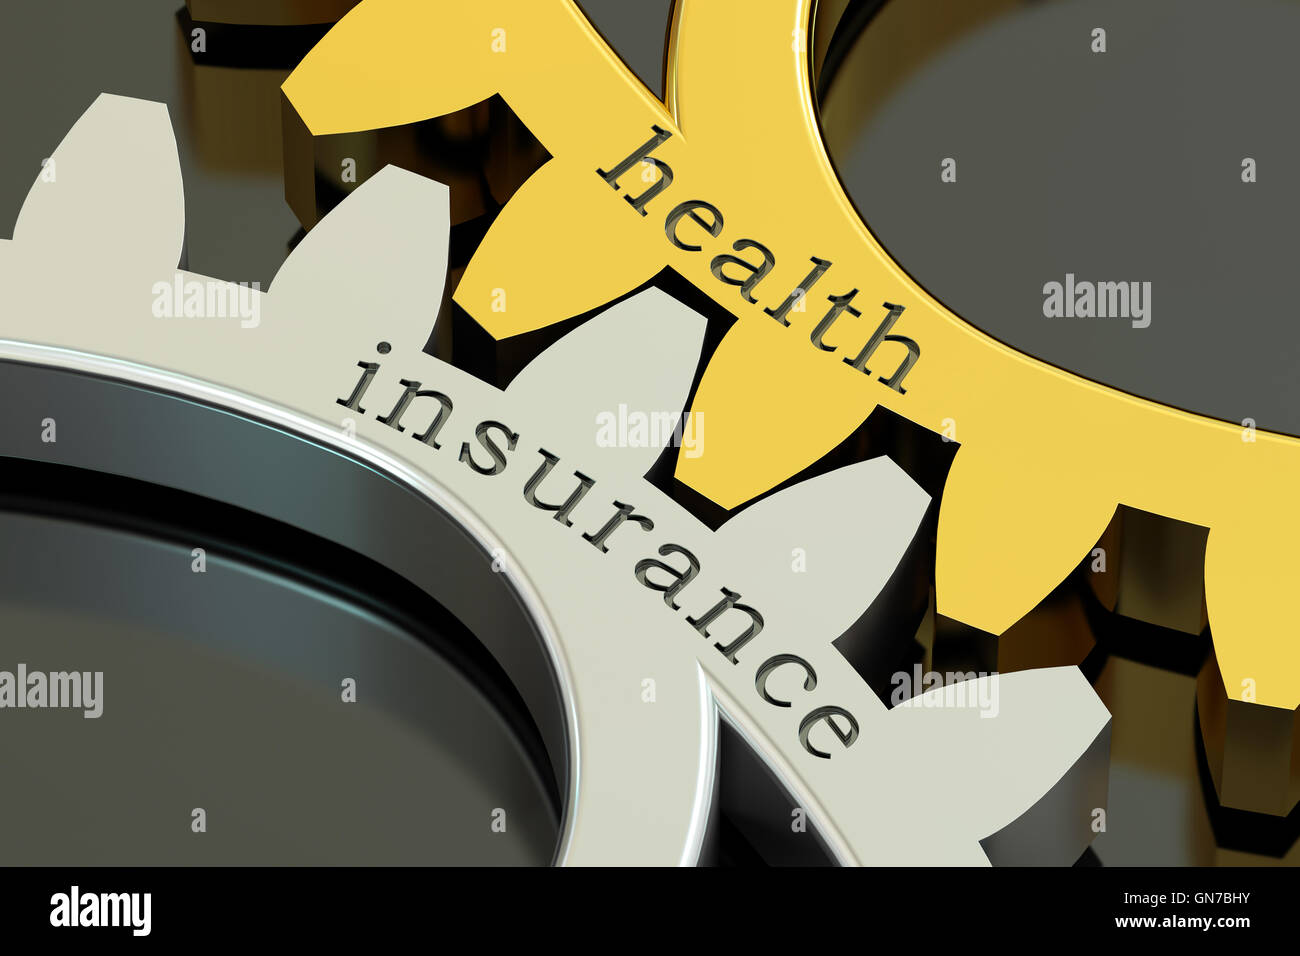 Health Insurance, concept on the gearwheels, 3D rendering - Stock Image